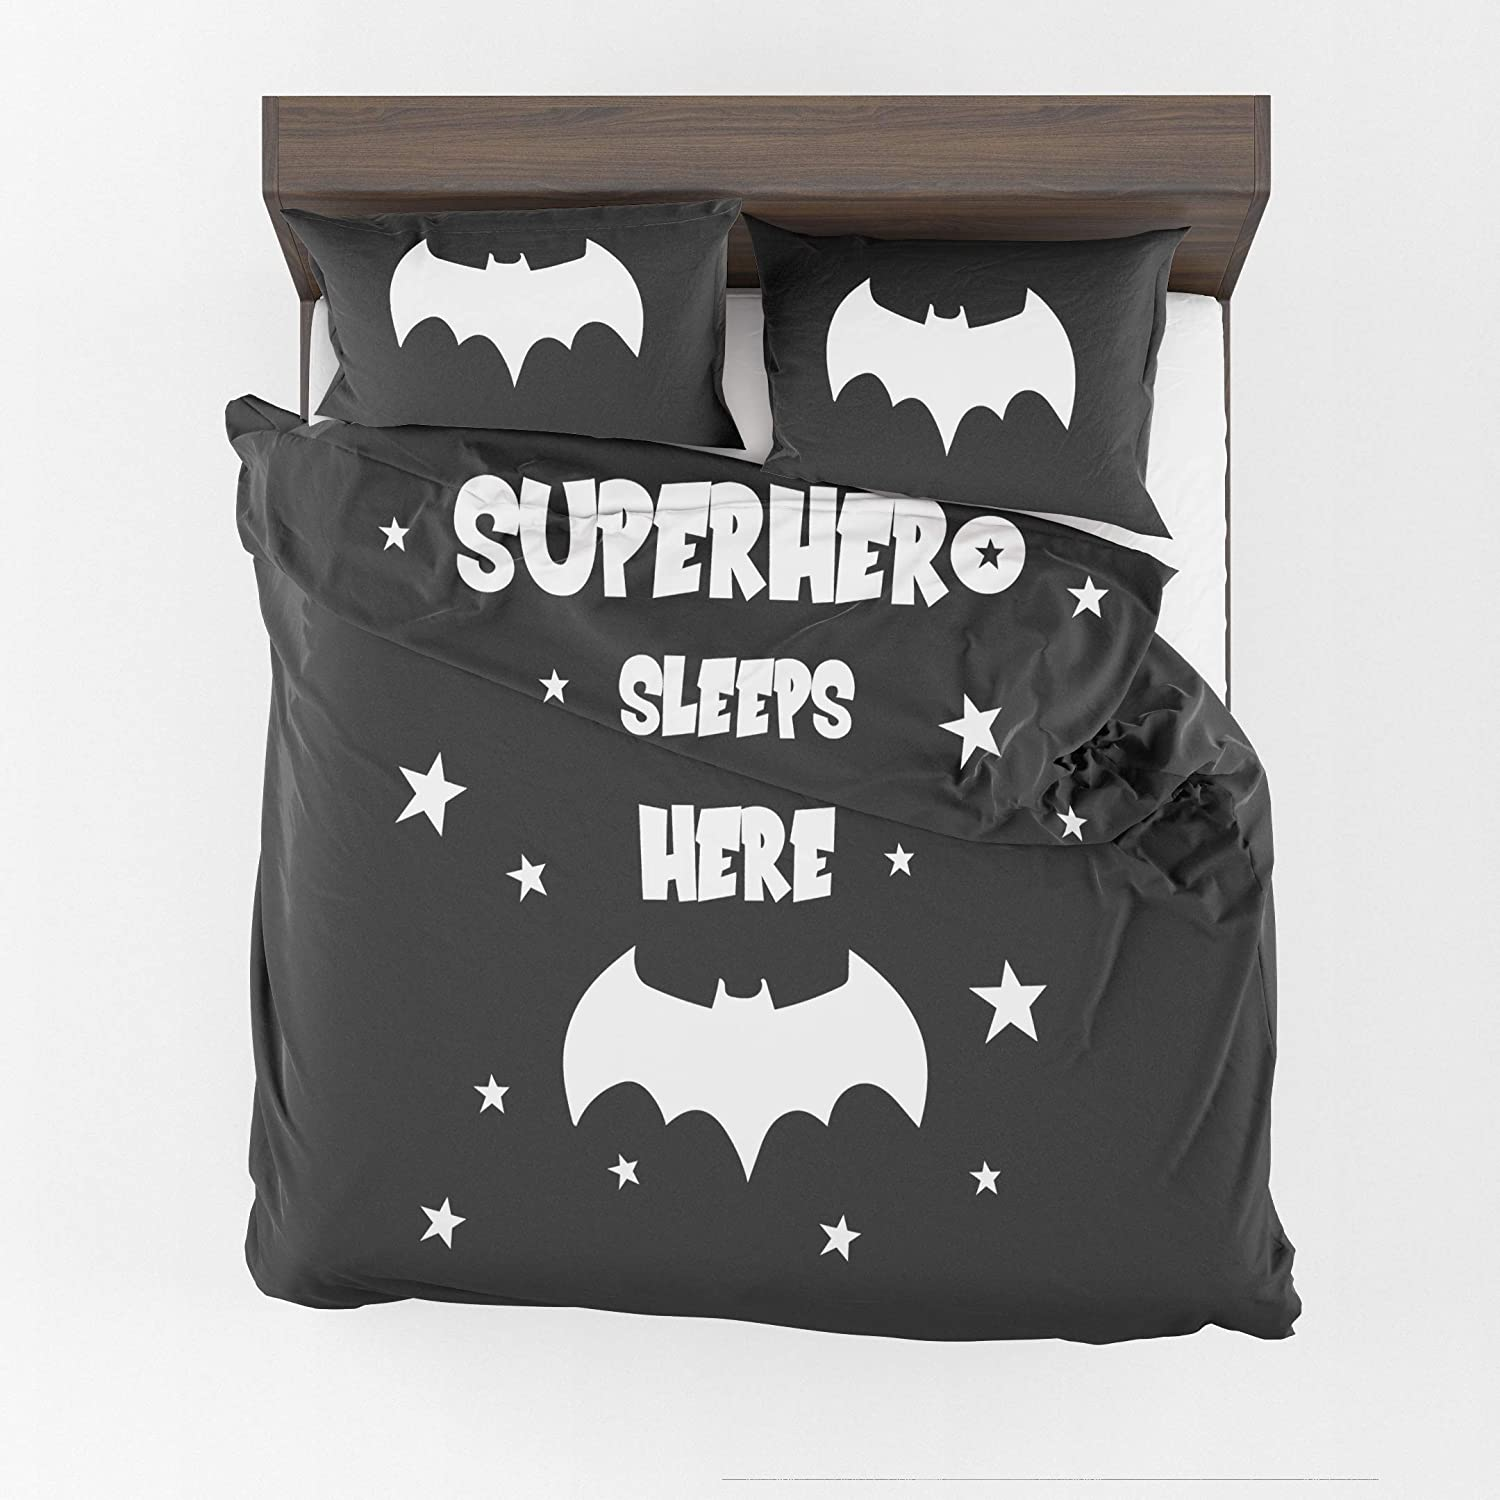 CB Smiles Superhero Sleeps here Sale Special Price Duvet Kids Bedding Super beauty product restock quality top! Cover Be Boys